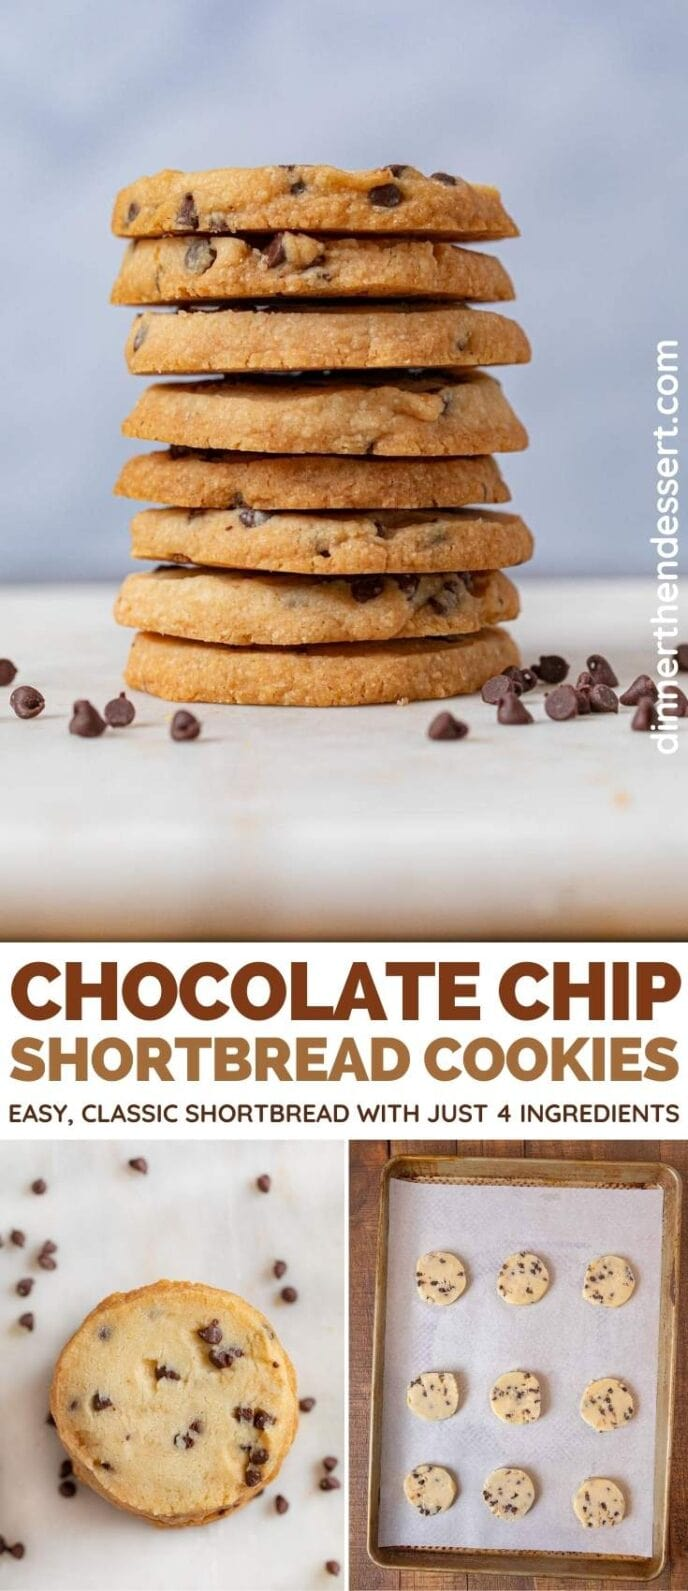 Chocolate Chip Shortbread Cookies collage